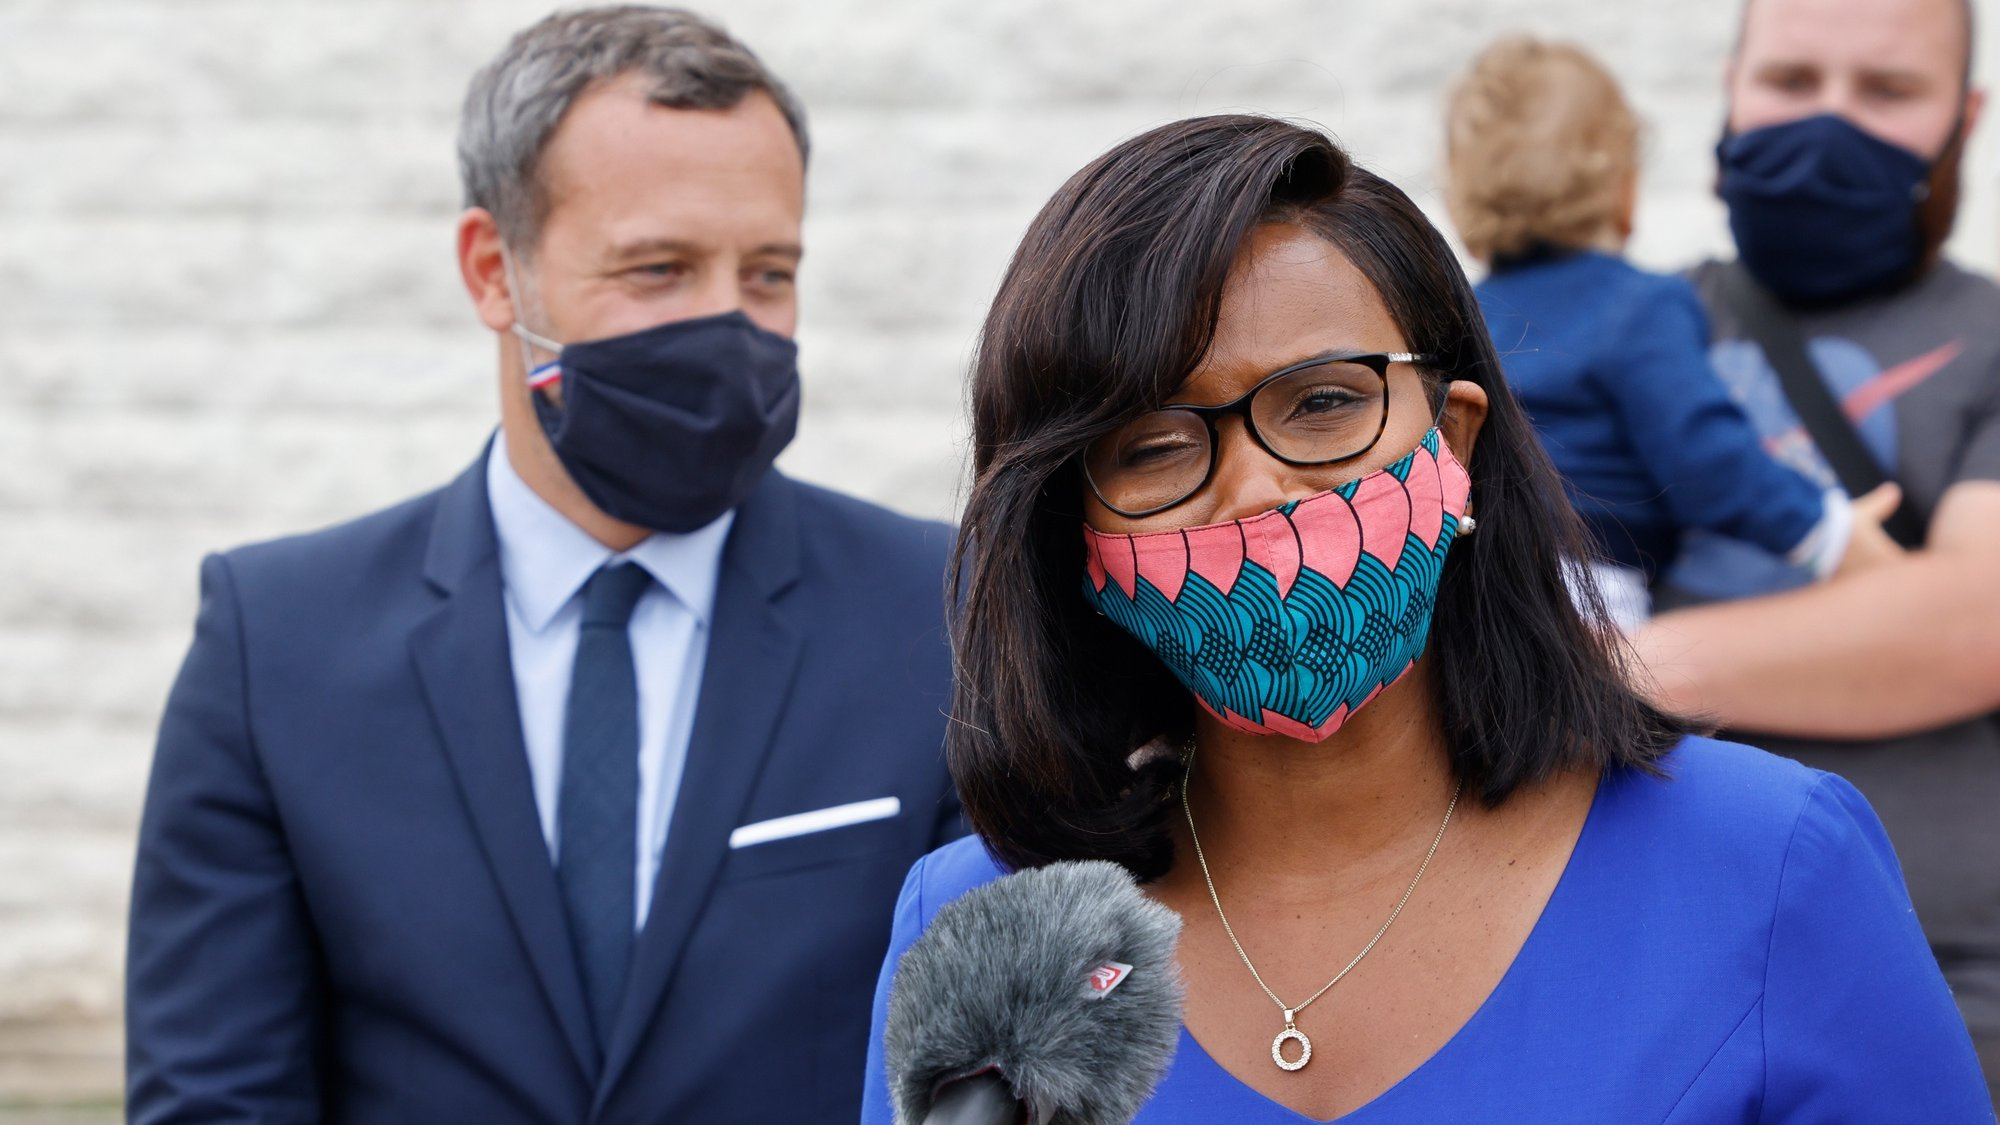 epa08691000 French Minister of State for Children and Families Adrien Taquet (L) and French Junior Minister of Gender Equality Elisabeth Moreno (R) address journalists after a visit to a Mother and Child Protection Centre (PMI) in Longjumeau, in the southern suburbs of Paris, France, 23 September 2020.  EPA/LUDOVIC MARIN / POOL  MAXPPP OUT